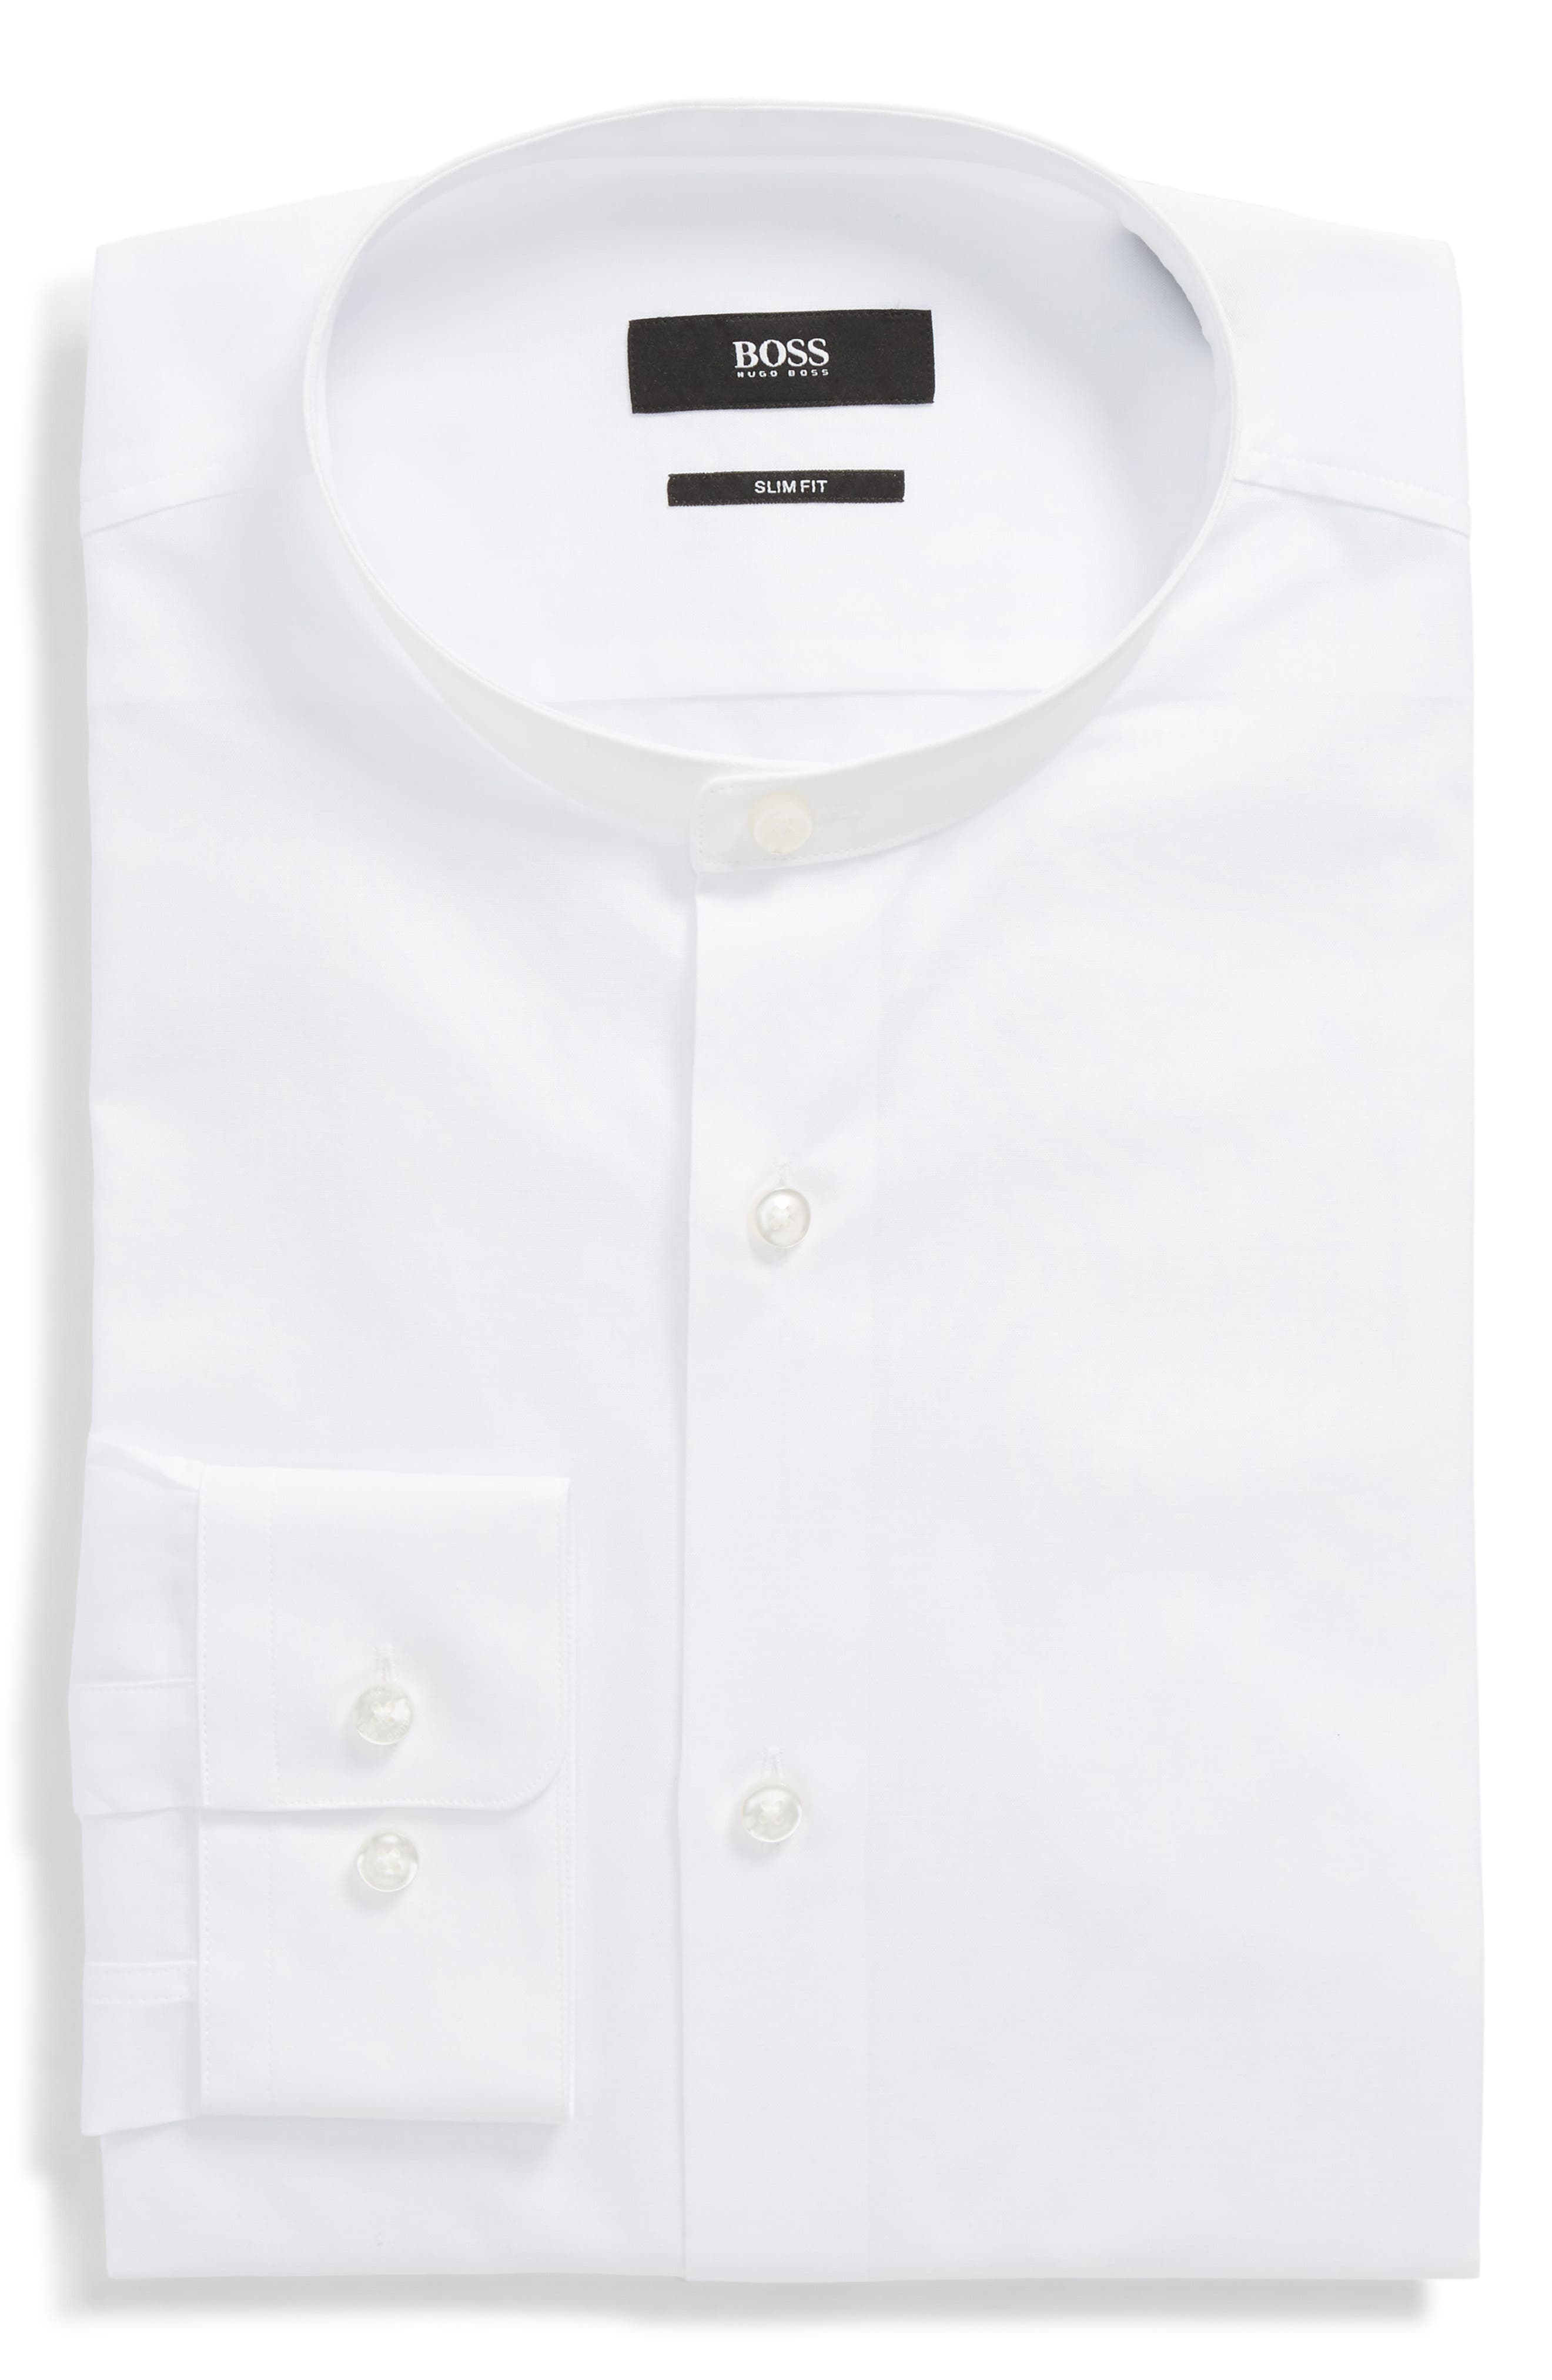 Jordi Slim Fit Solid Band Collar Dress Shirt,                         Main,                         color, White